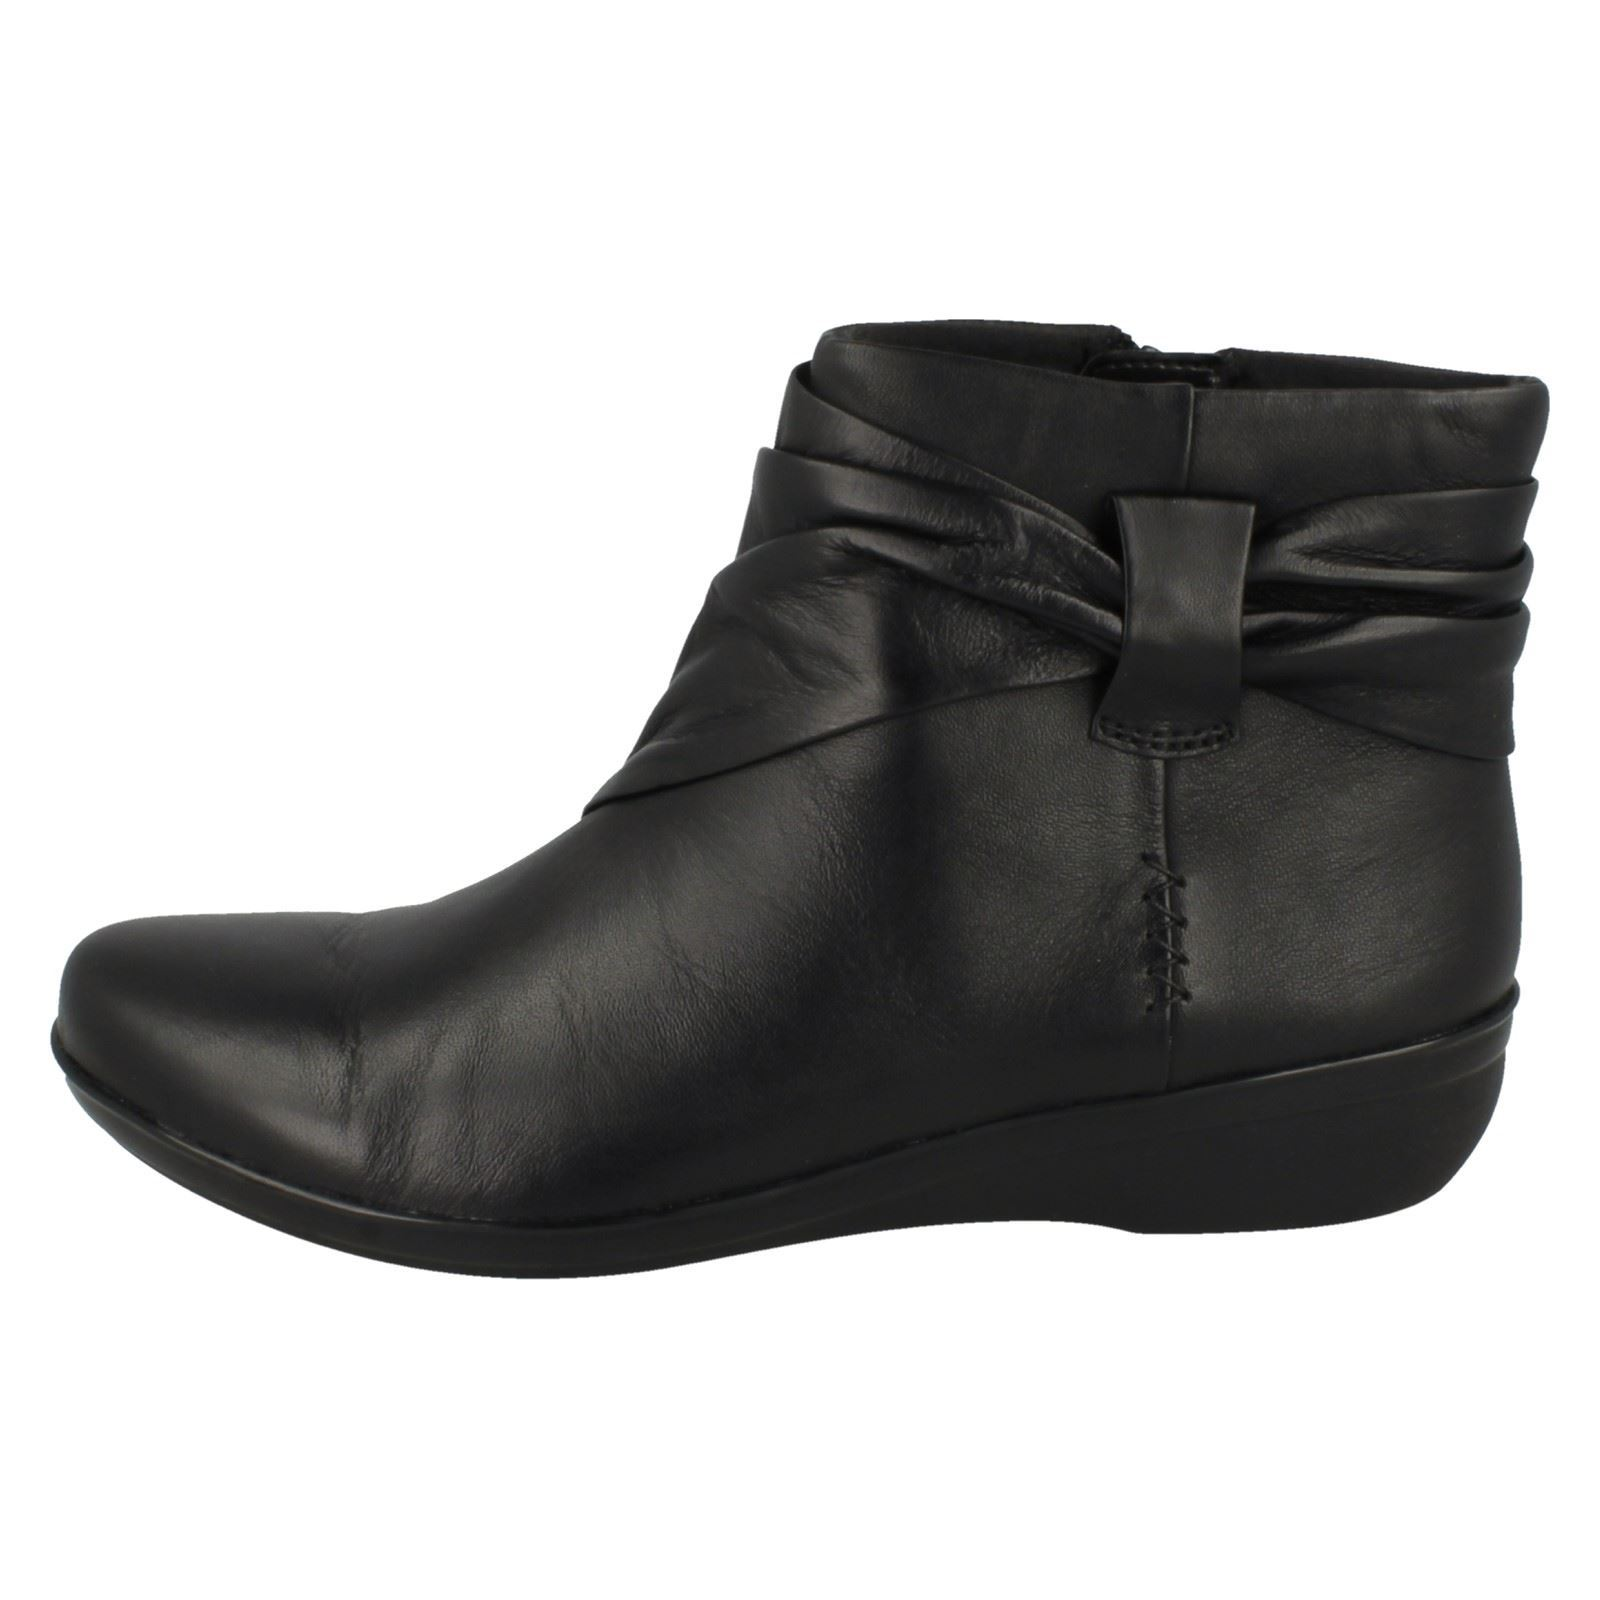 9cc2e26d17c Ladies Clarks Soft Leather Flat Wide and Medium Ankle BOOTS - Everlay Mandy  UK 5 Black D